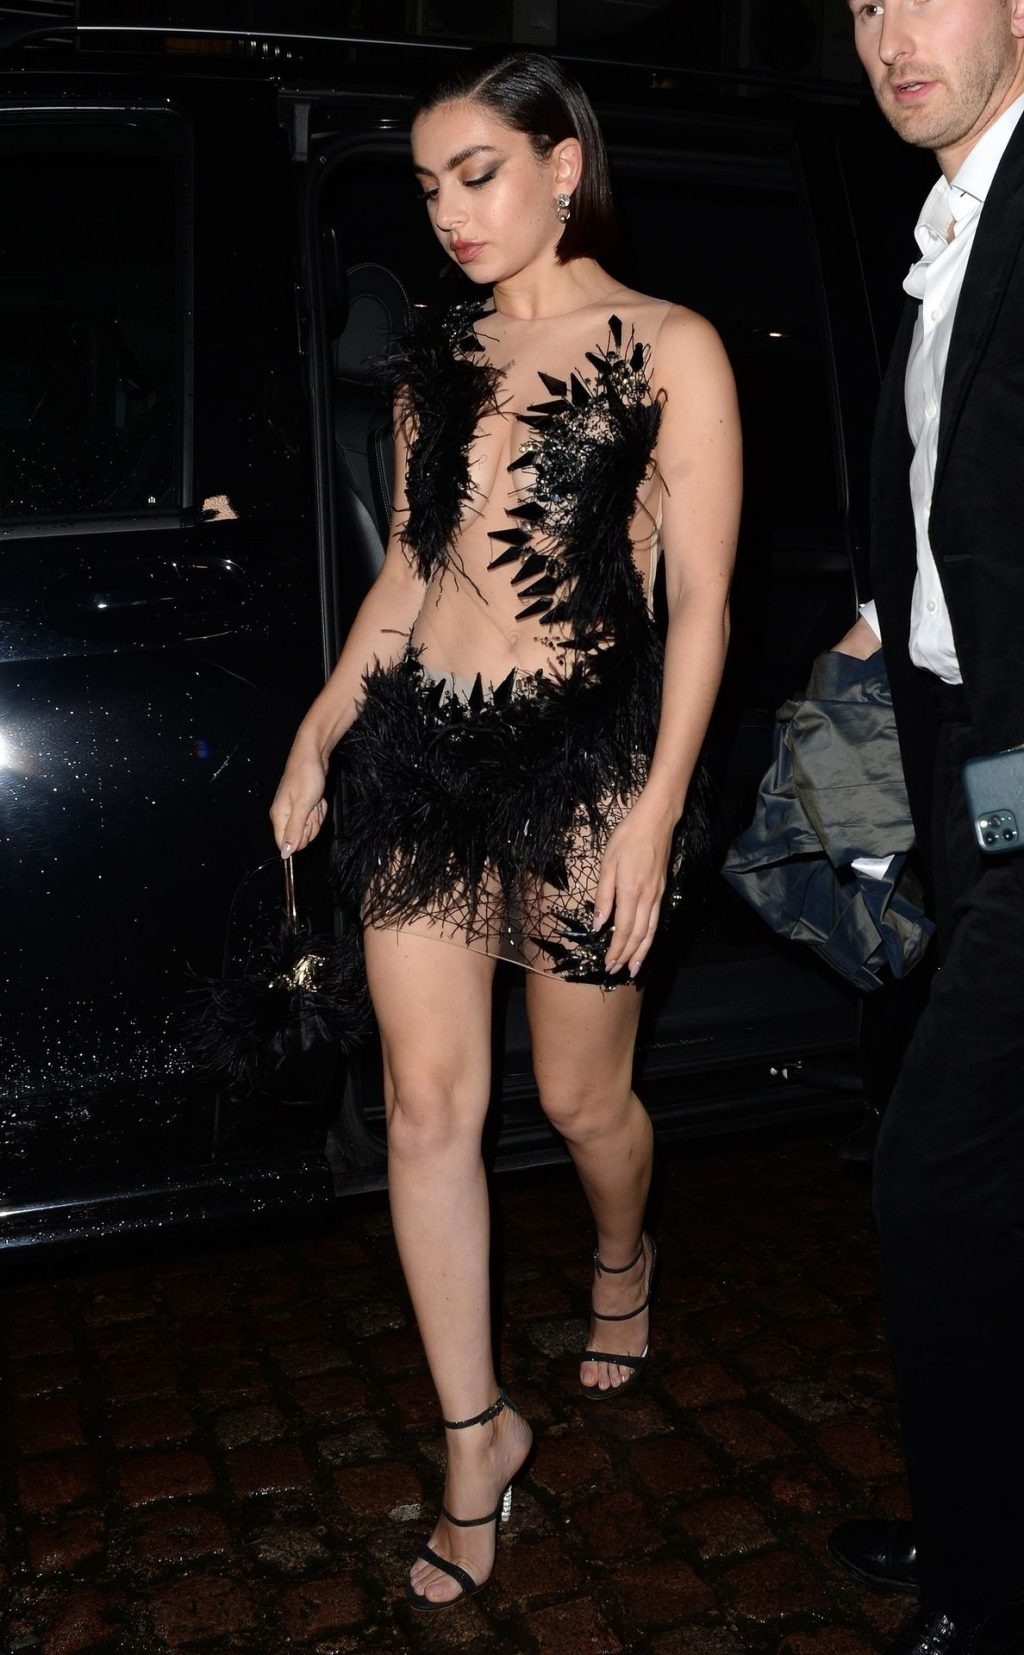 Charli XCX Displays Her Tits in a See-Through Dress (7 Photos)